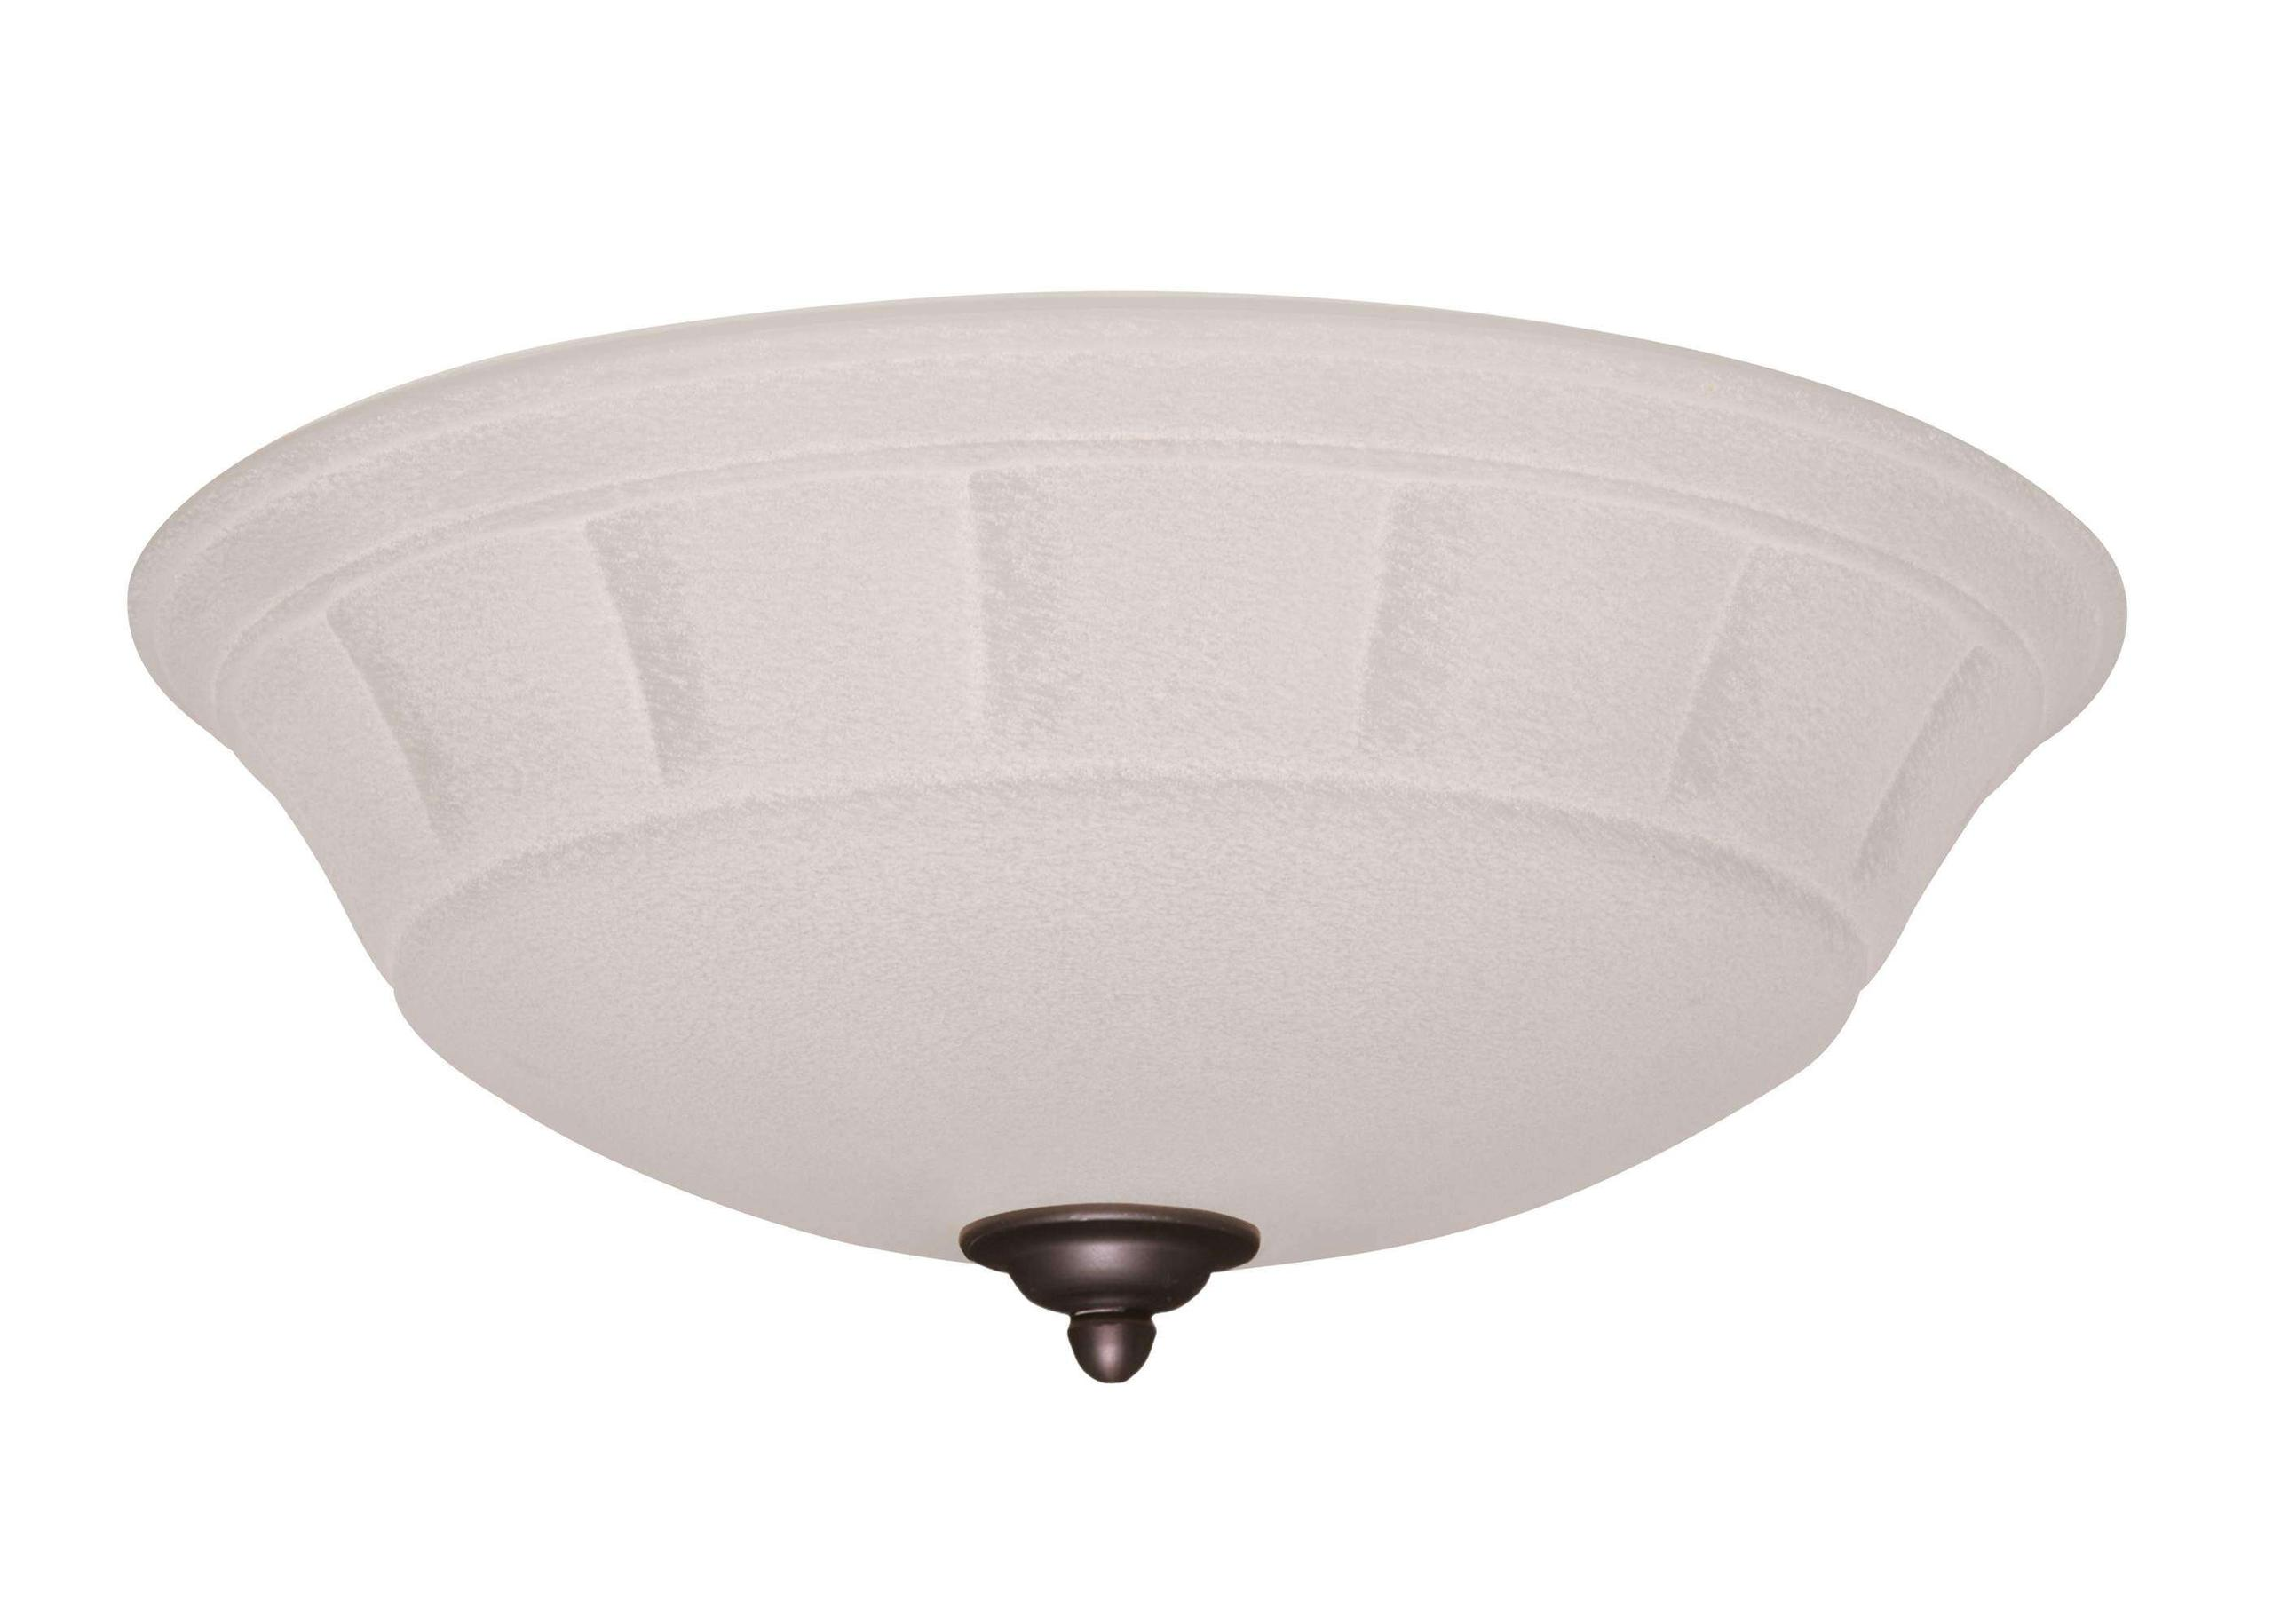 LK141WW Single Bowl Gloss White Ceiling Fan LED Light Fixture